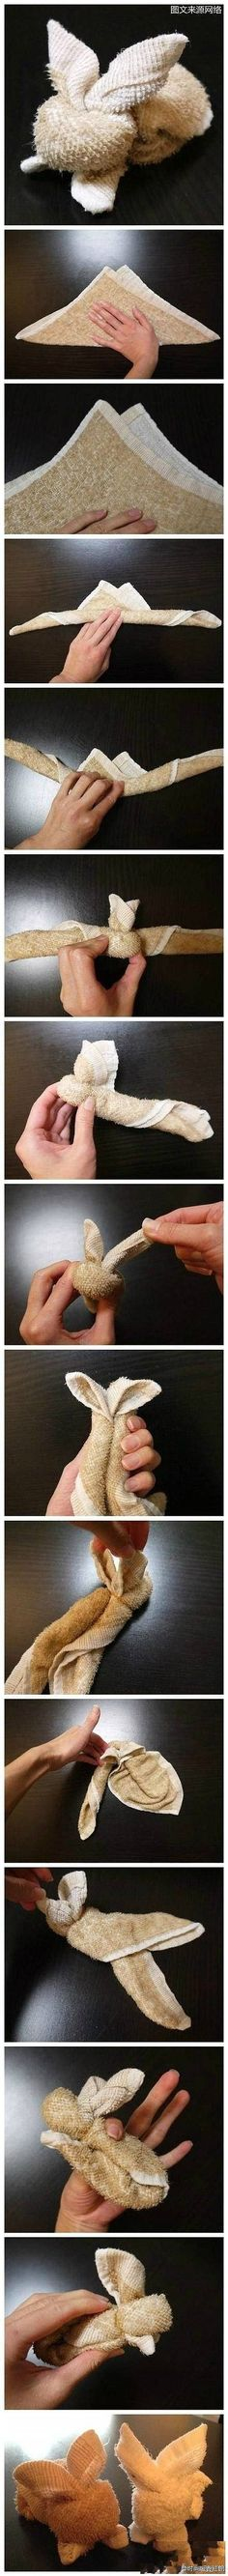 Rabbit towel folding: